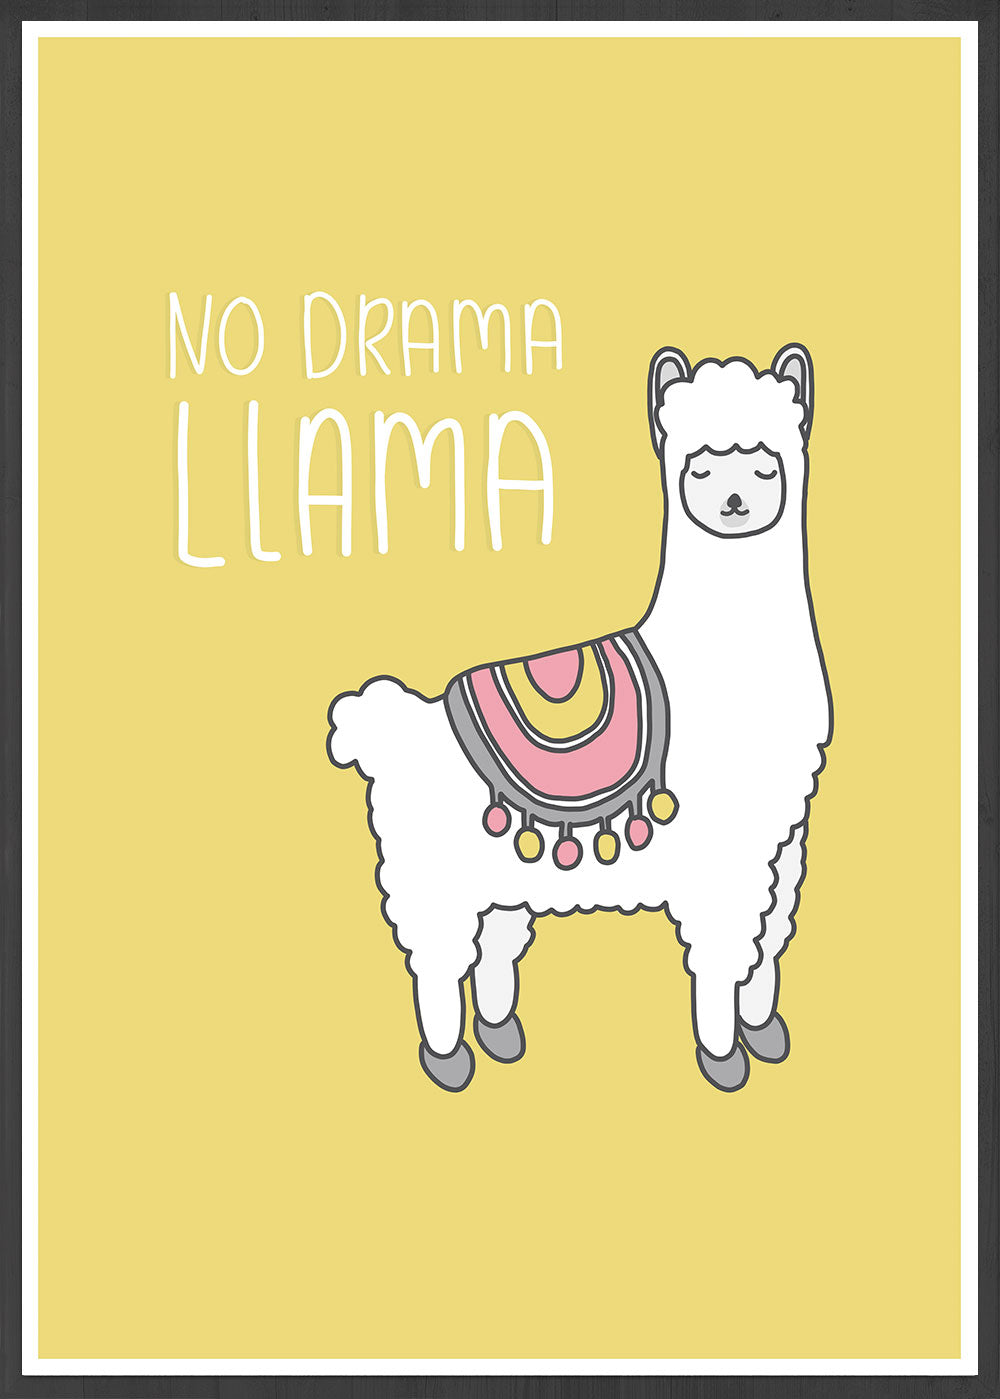 No Drama Llama Animal Art Print in a frame